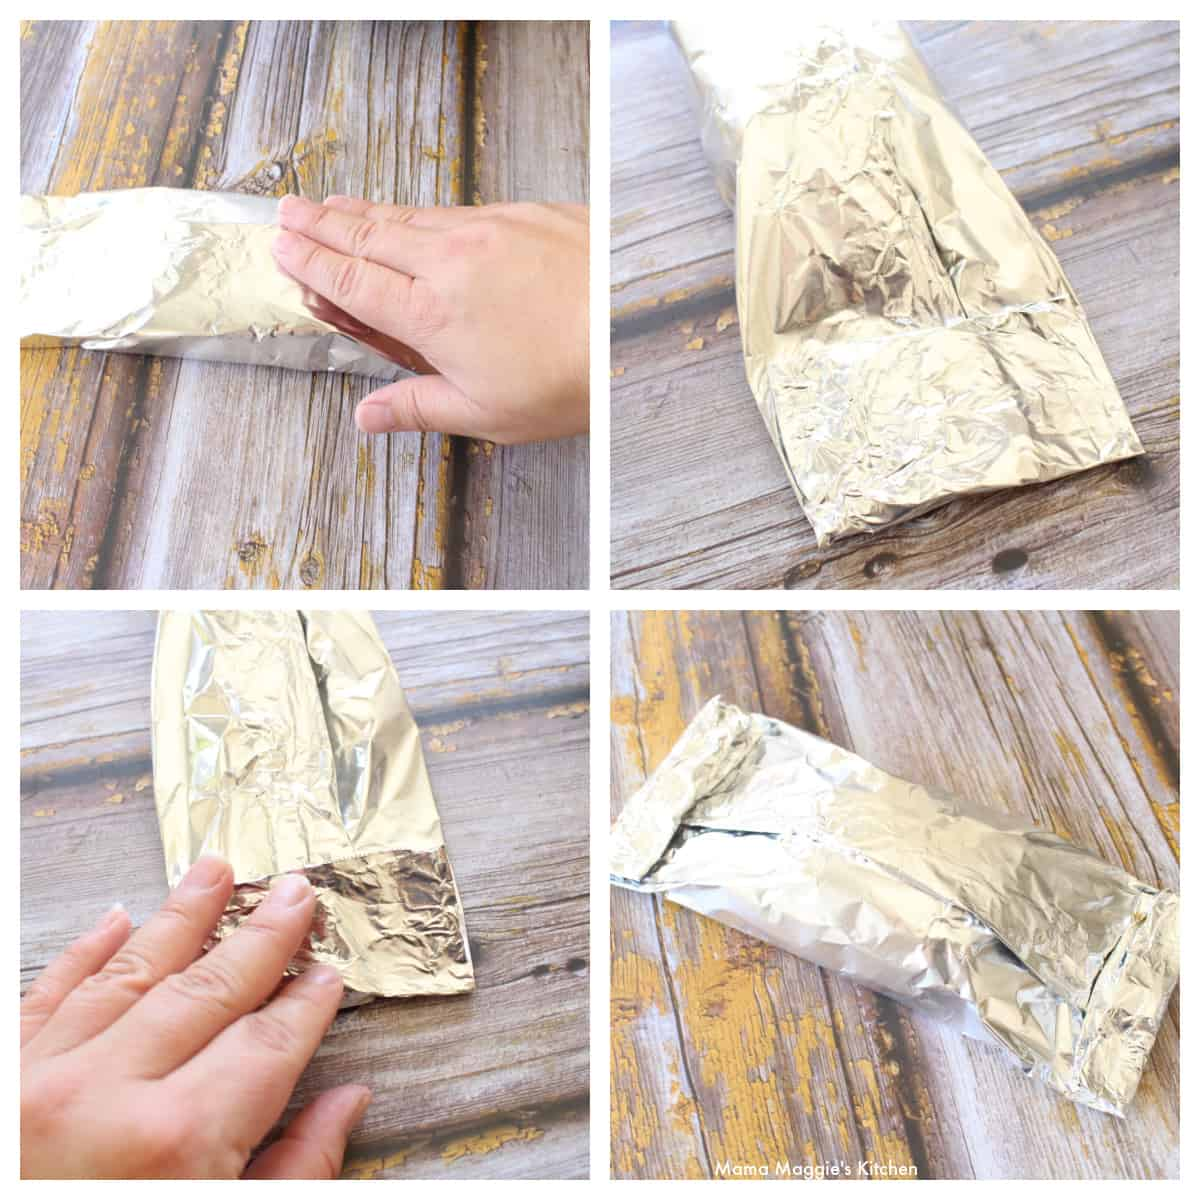 A collage showing how to fold and assemble a foil packet.